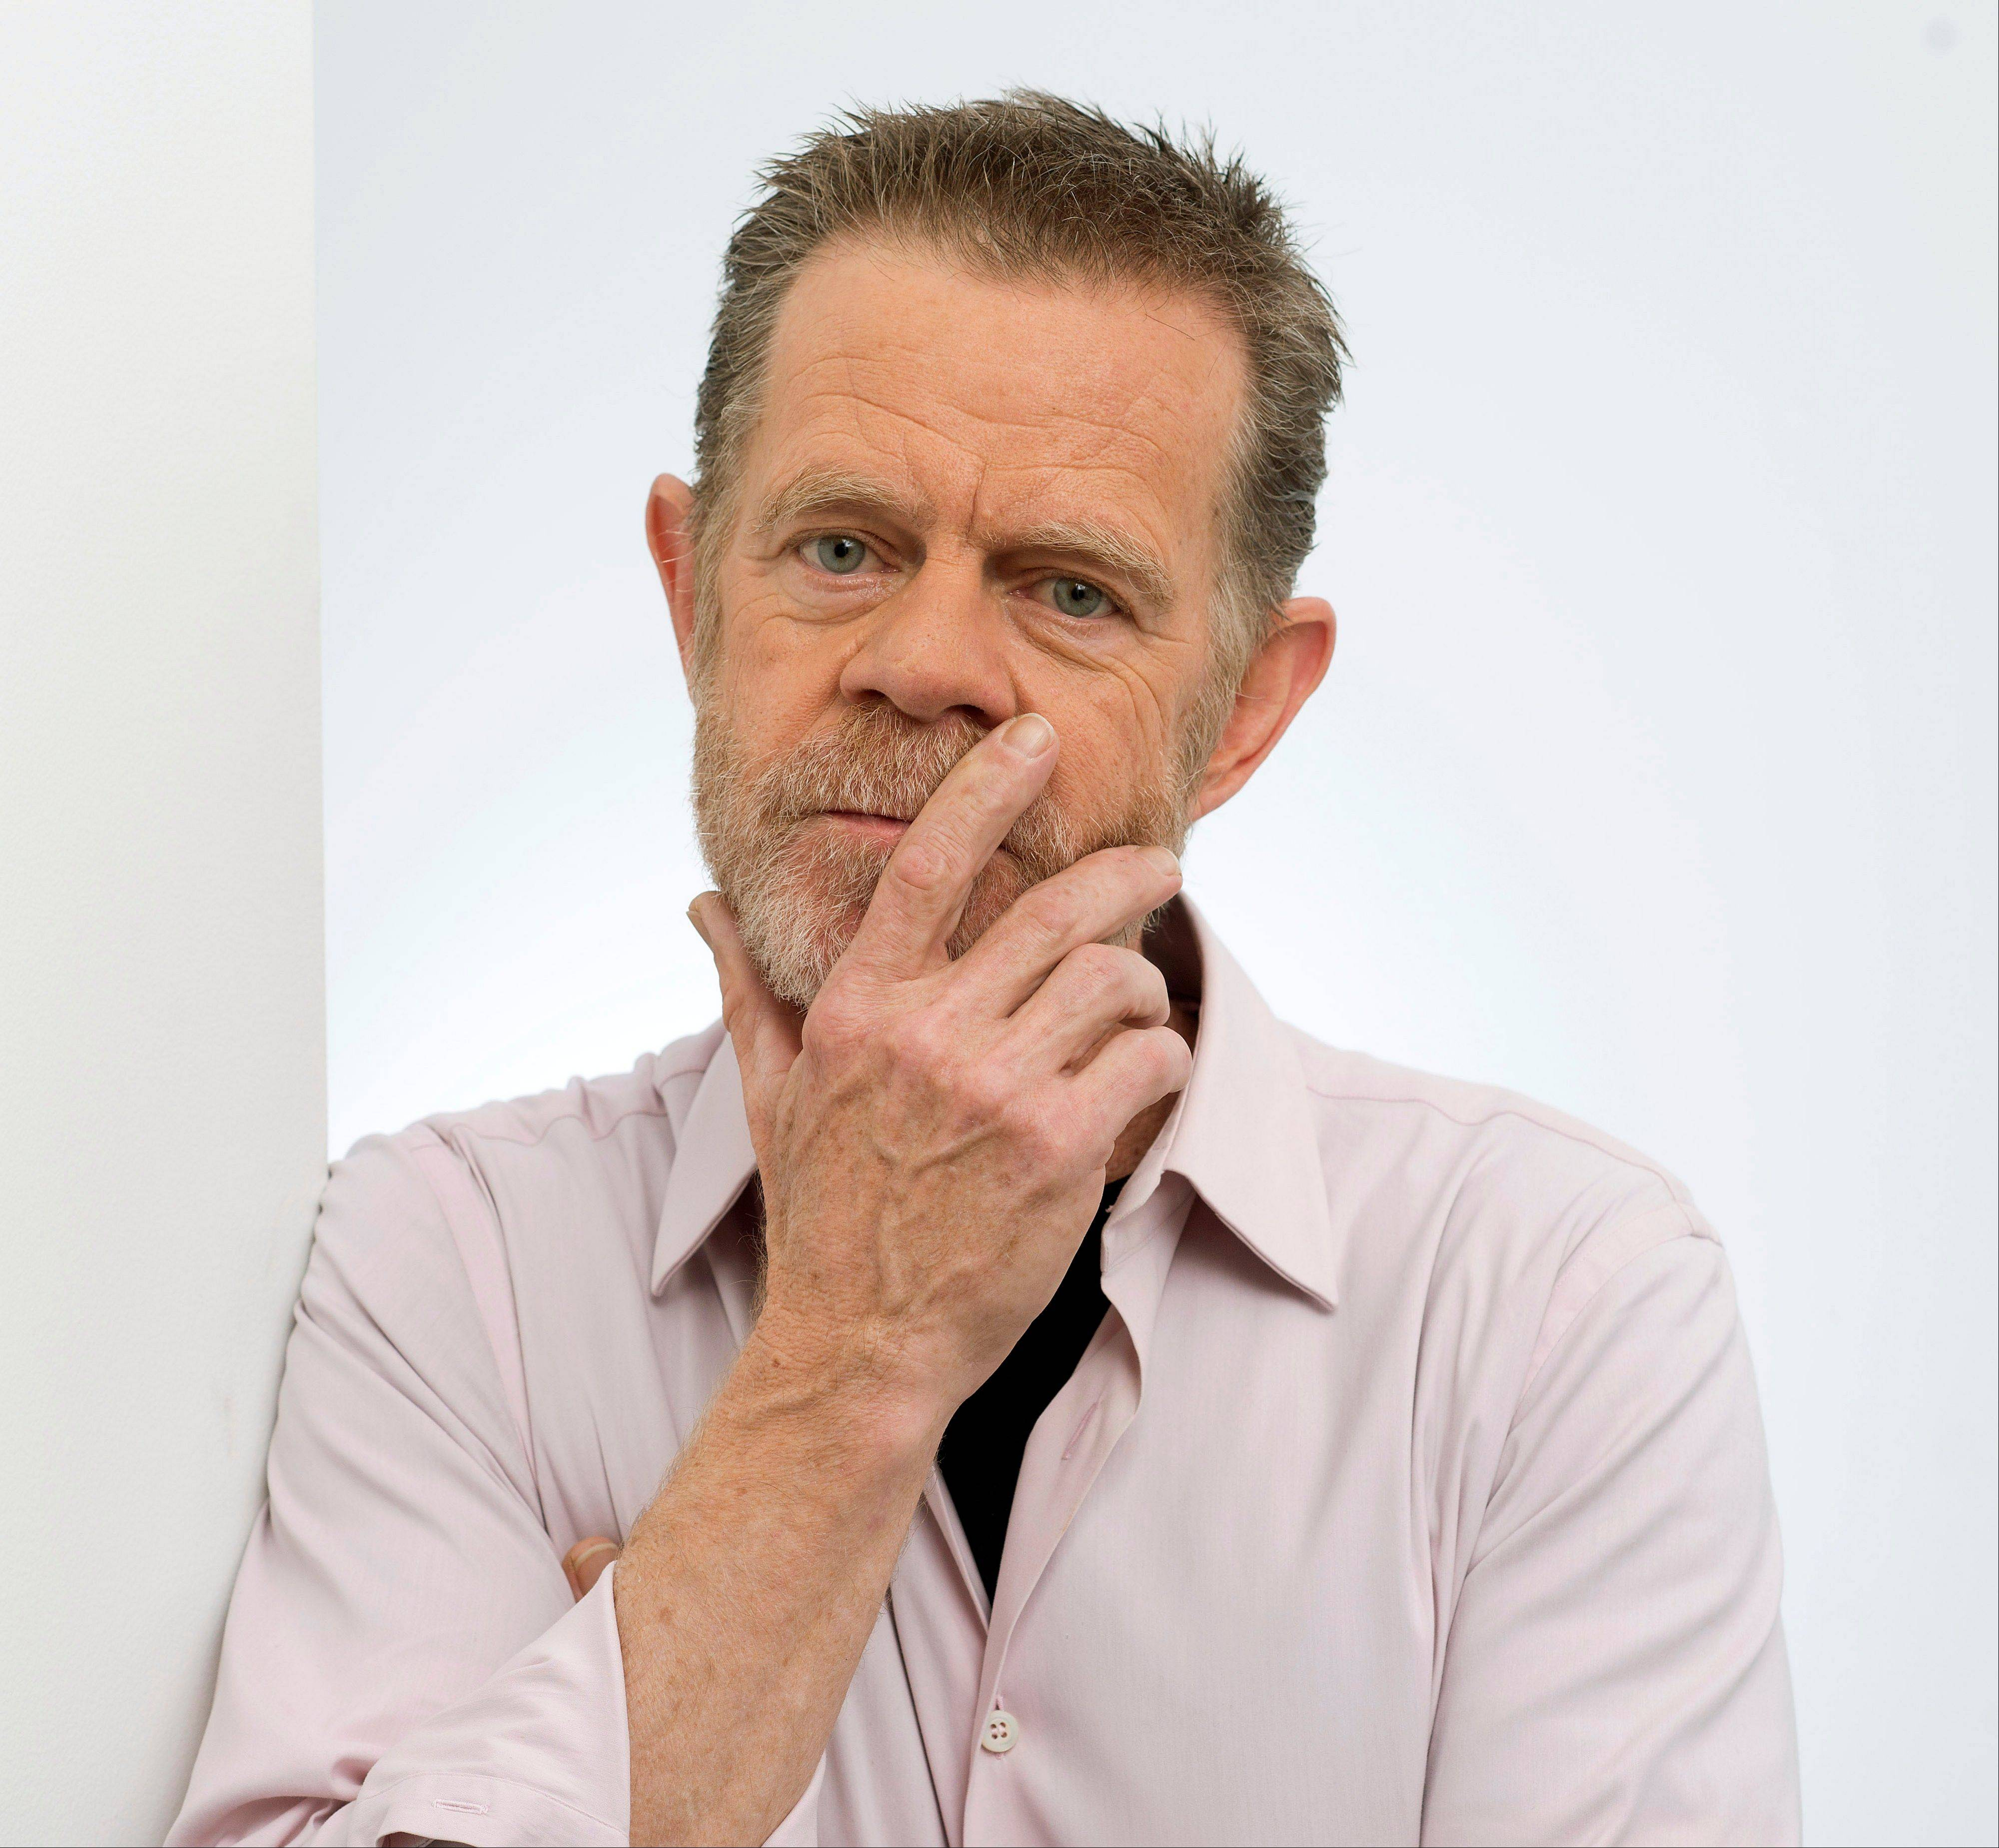 The hair may be shorter, but actor William H. Macy�s character hasn�t changed in the Showtime television series �Shameless.�